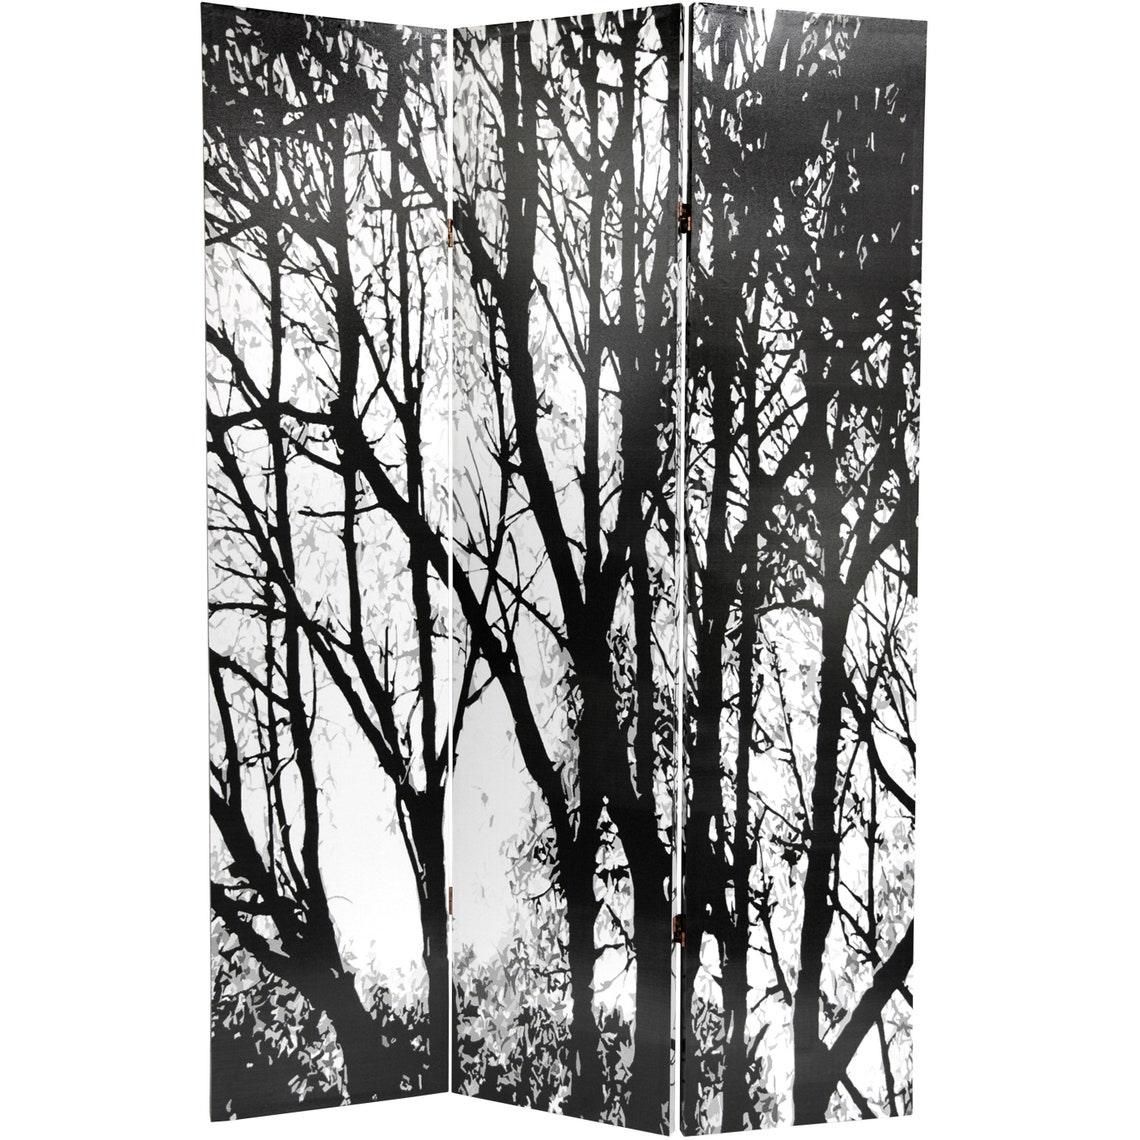 6 ft. Tall Trees Double Sided Room Divider